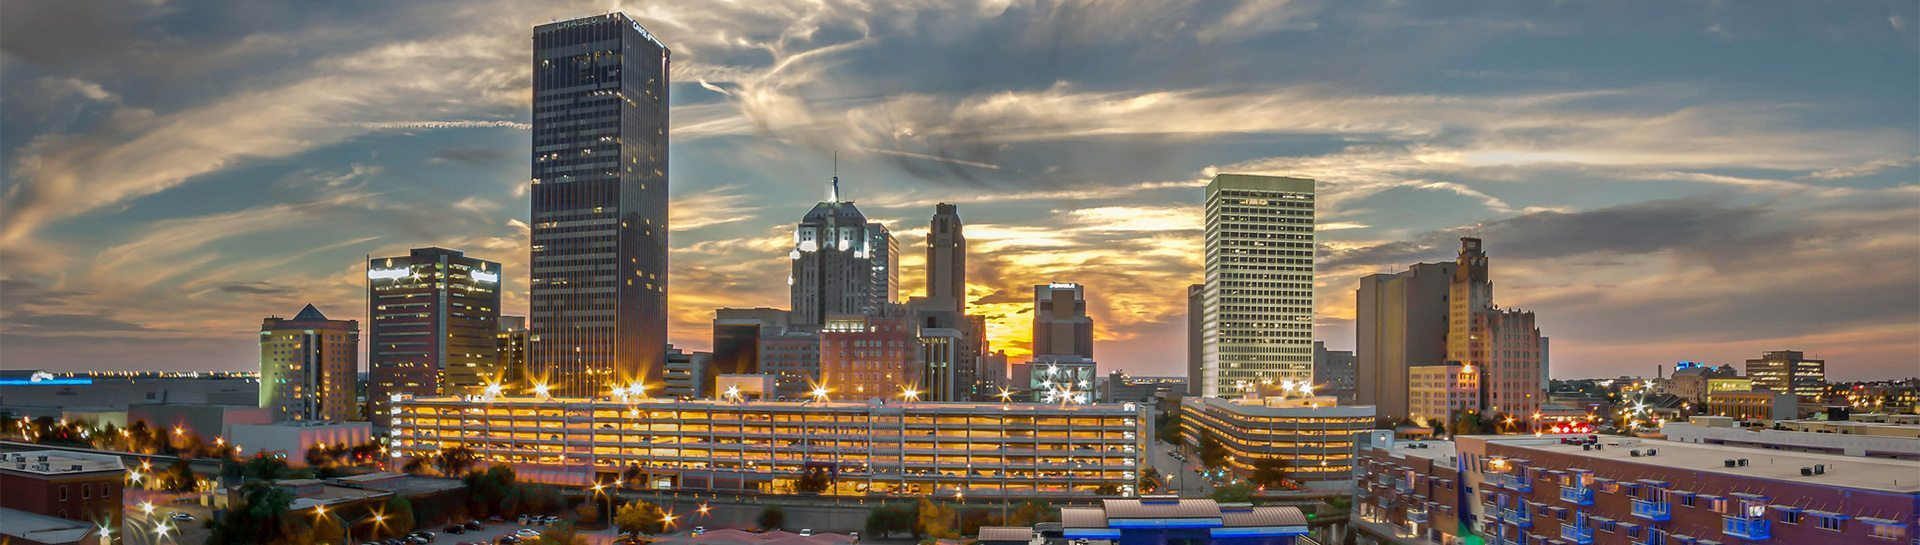 Oklahoma City skyline panoramic